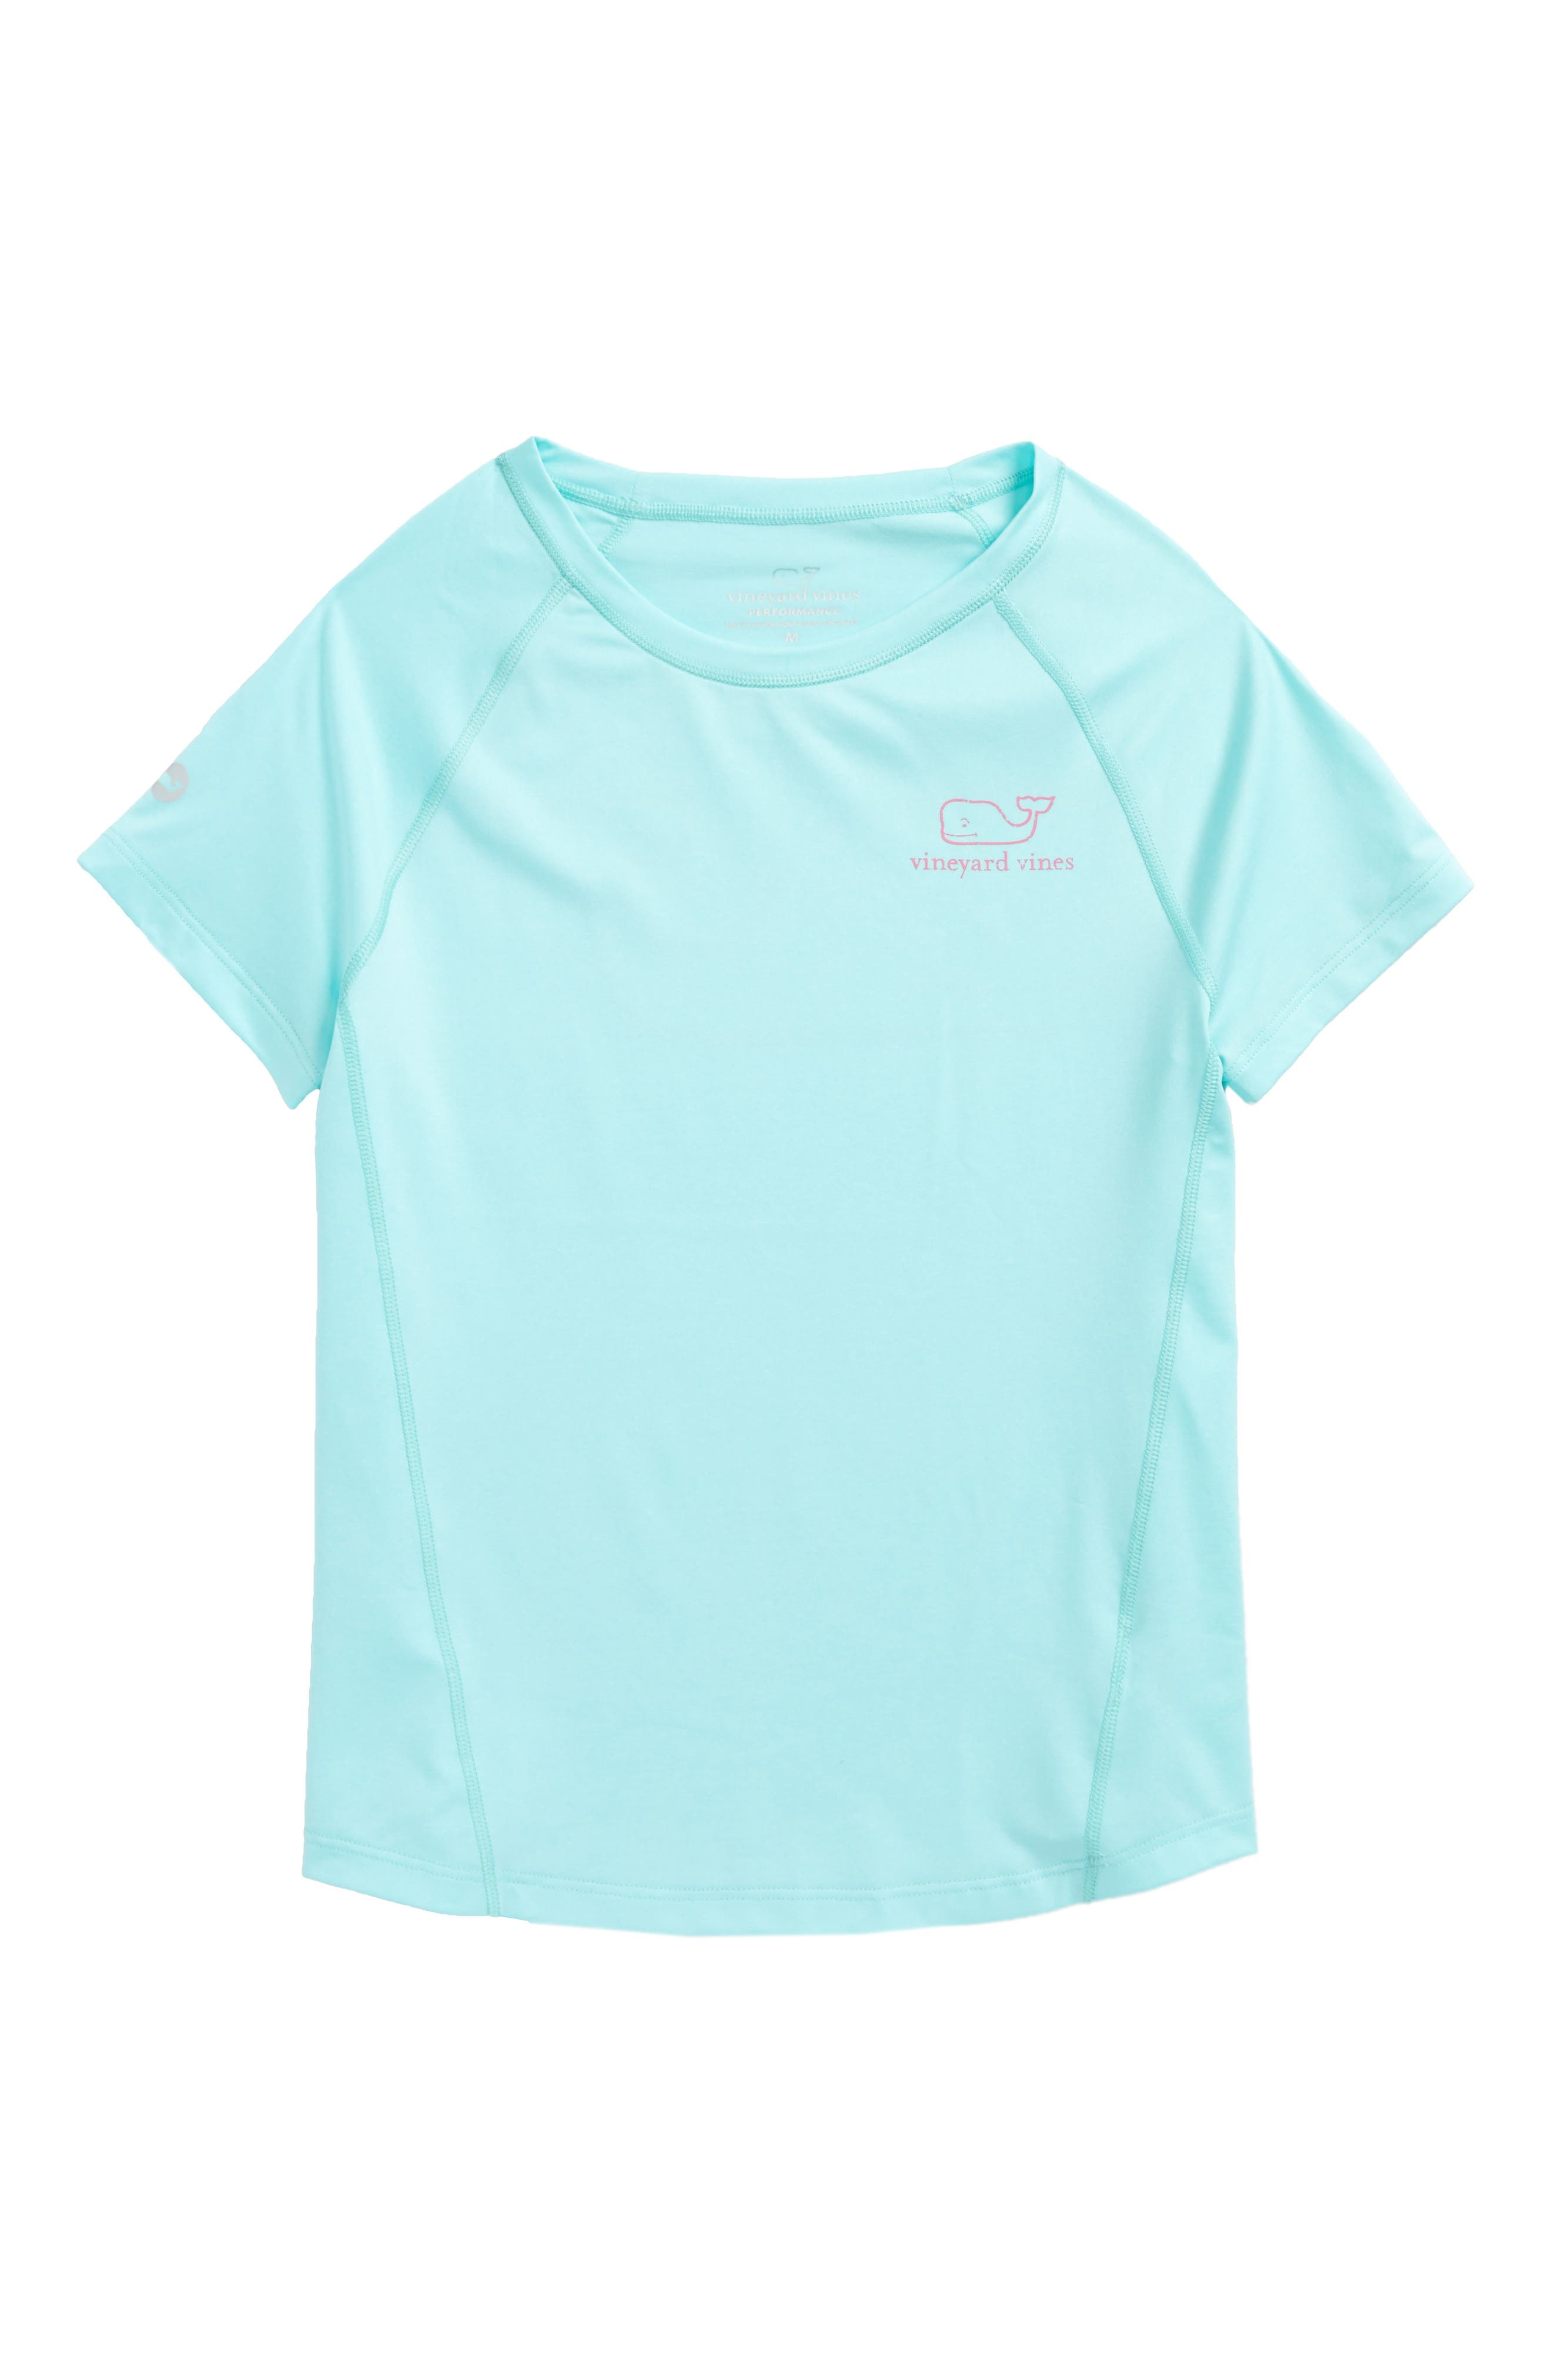 Vintage Whale Performance Tee,                         Main,                         color,